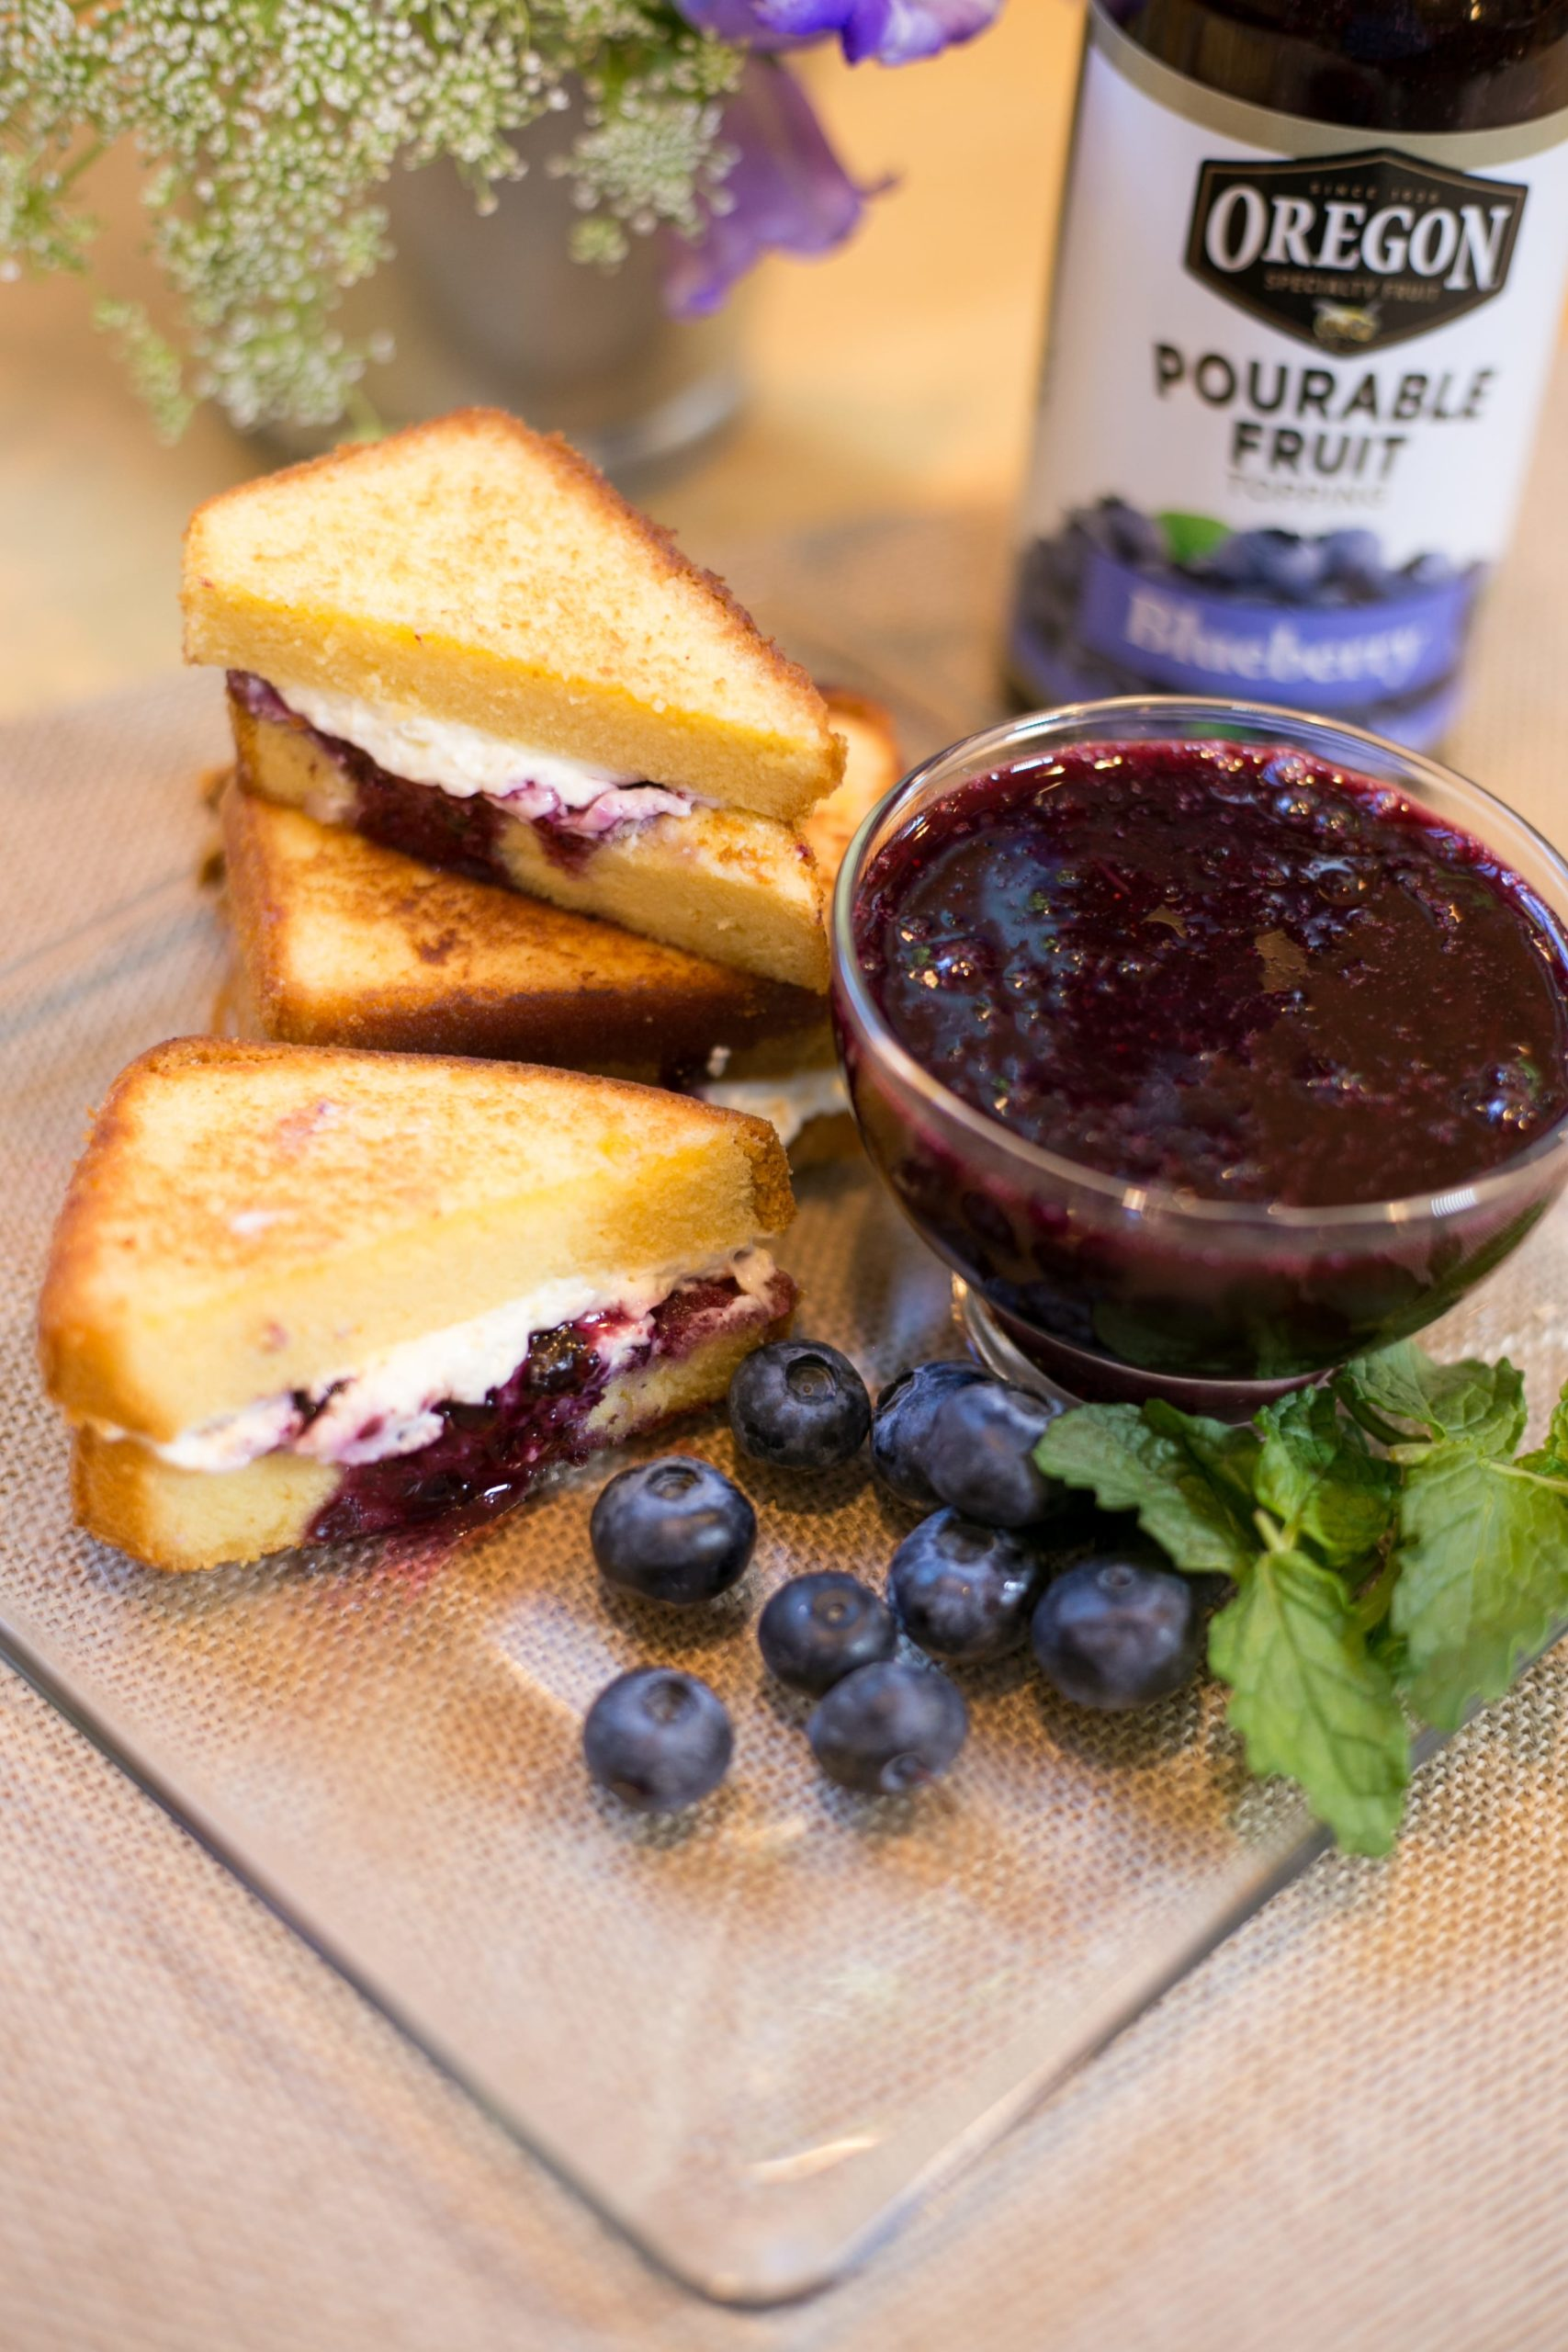 Blueberry Pourable Fruit with Grilled Pound Cake Sandwiches